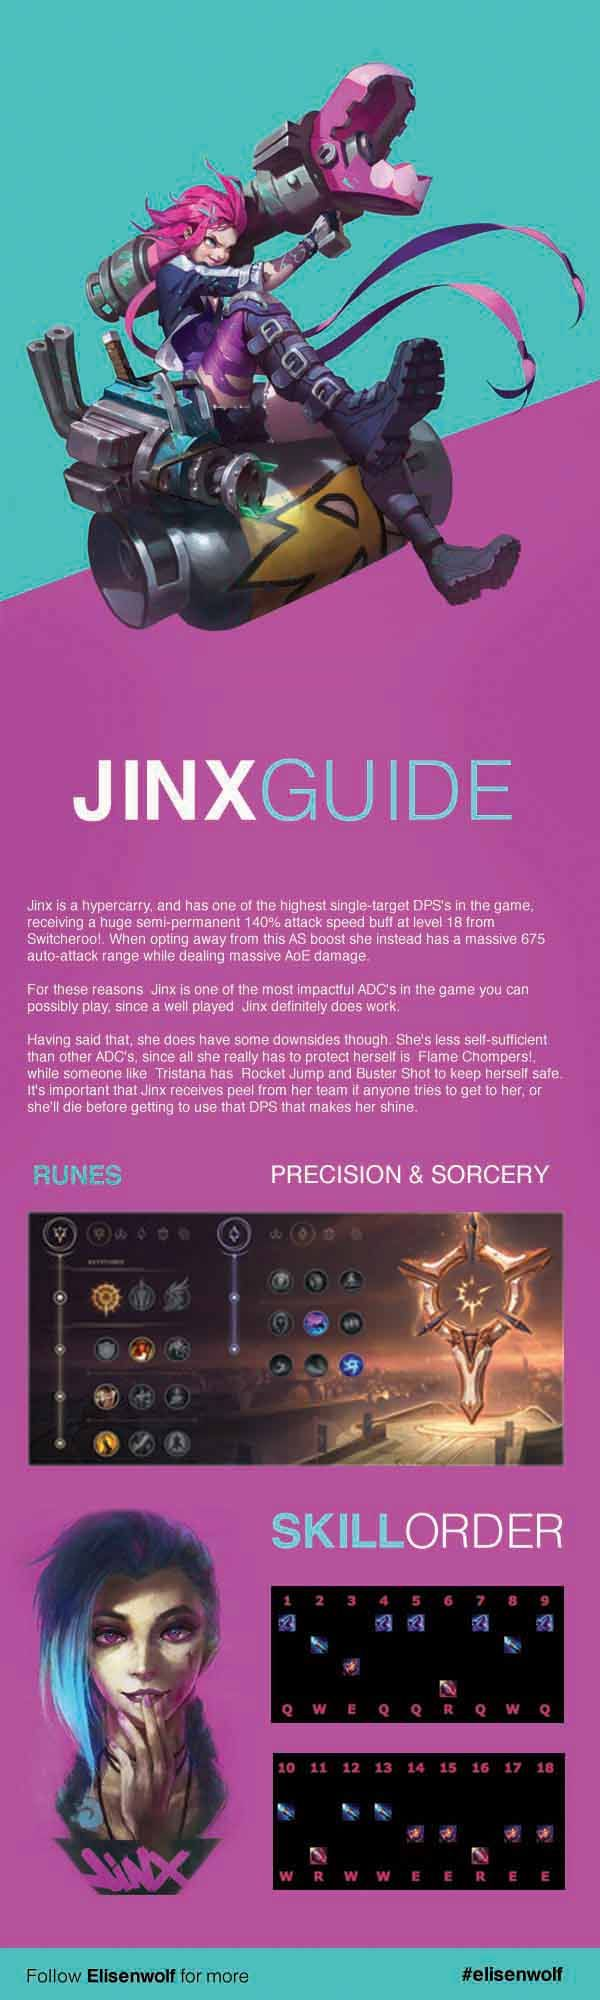 How to be BETTER at JINX! Best build and runes. Why play Jinx because she is a hypercarry, and has one of the highest single-target DPS's in the game.  #pephubgames #elisenwolf #lol #jinx #moba